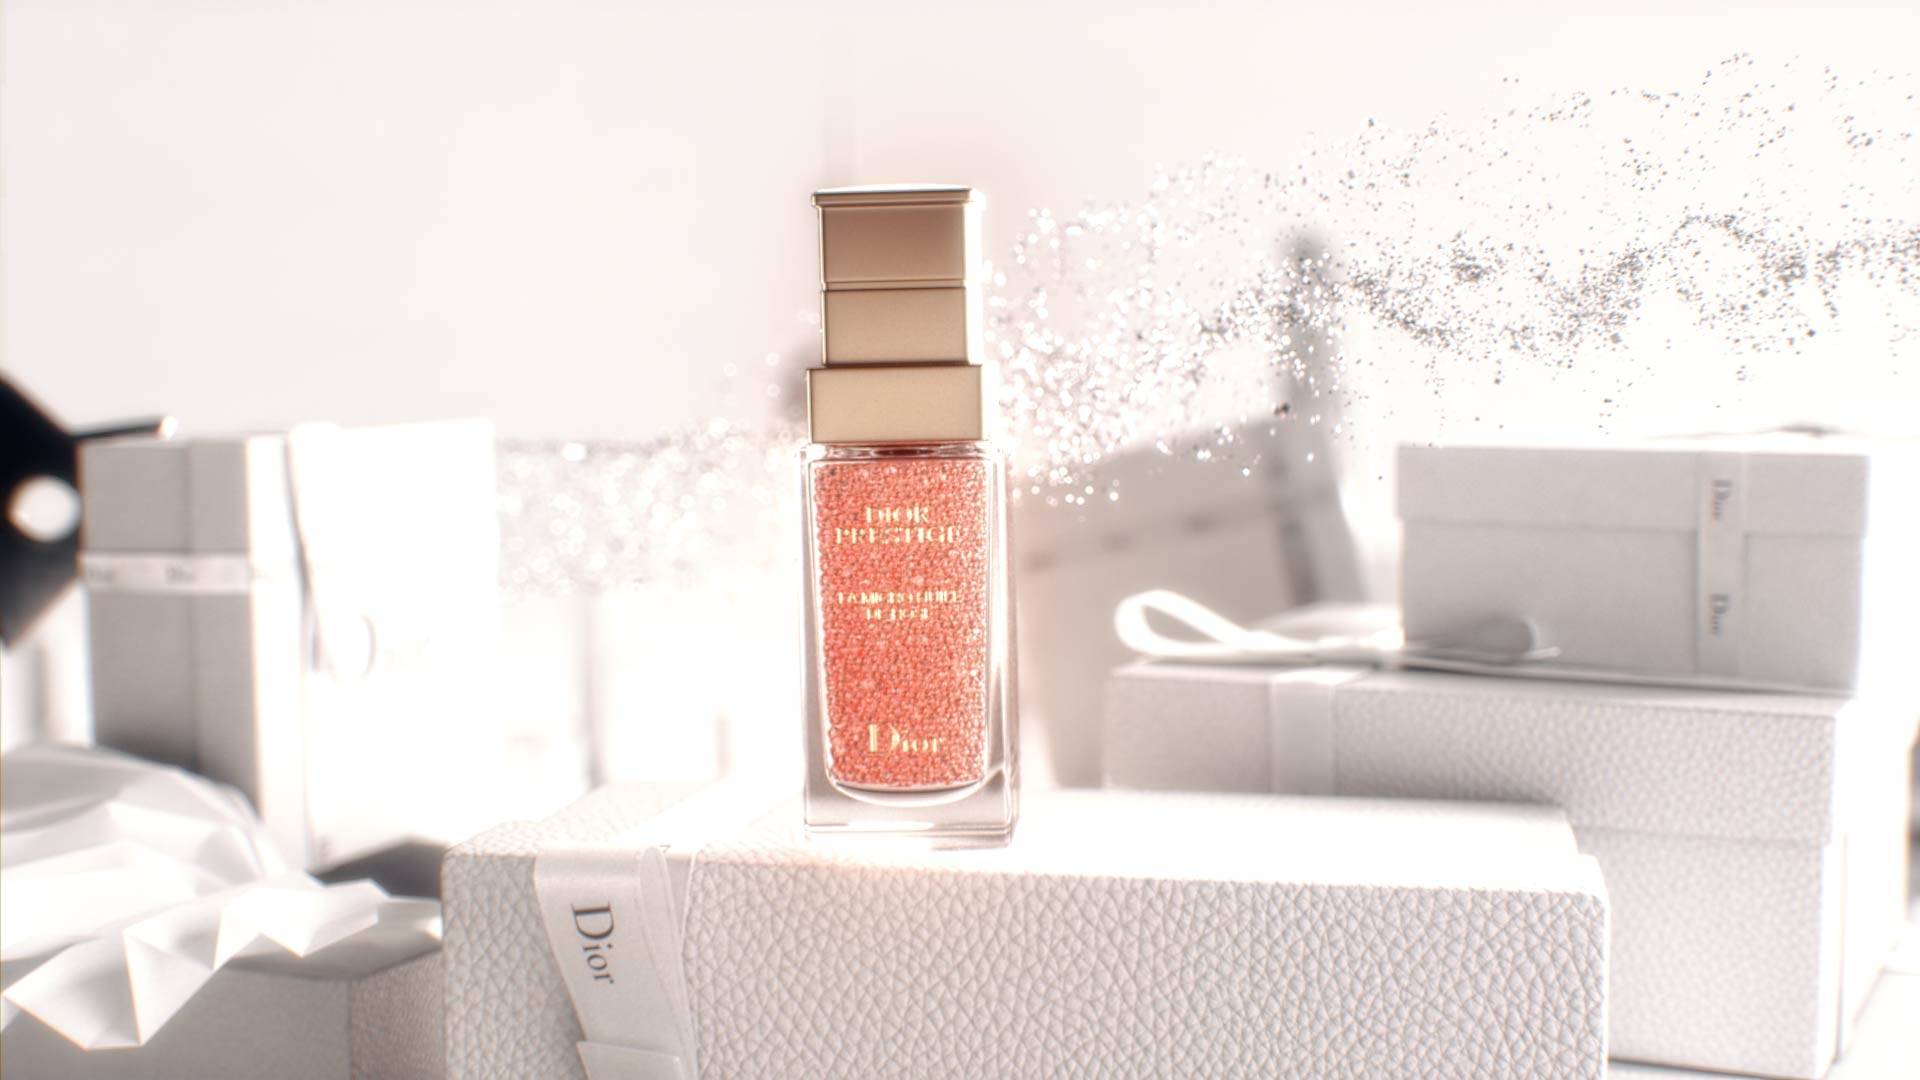 3D render of Dior Prestige product in a motion design animation with particles